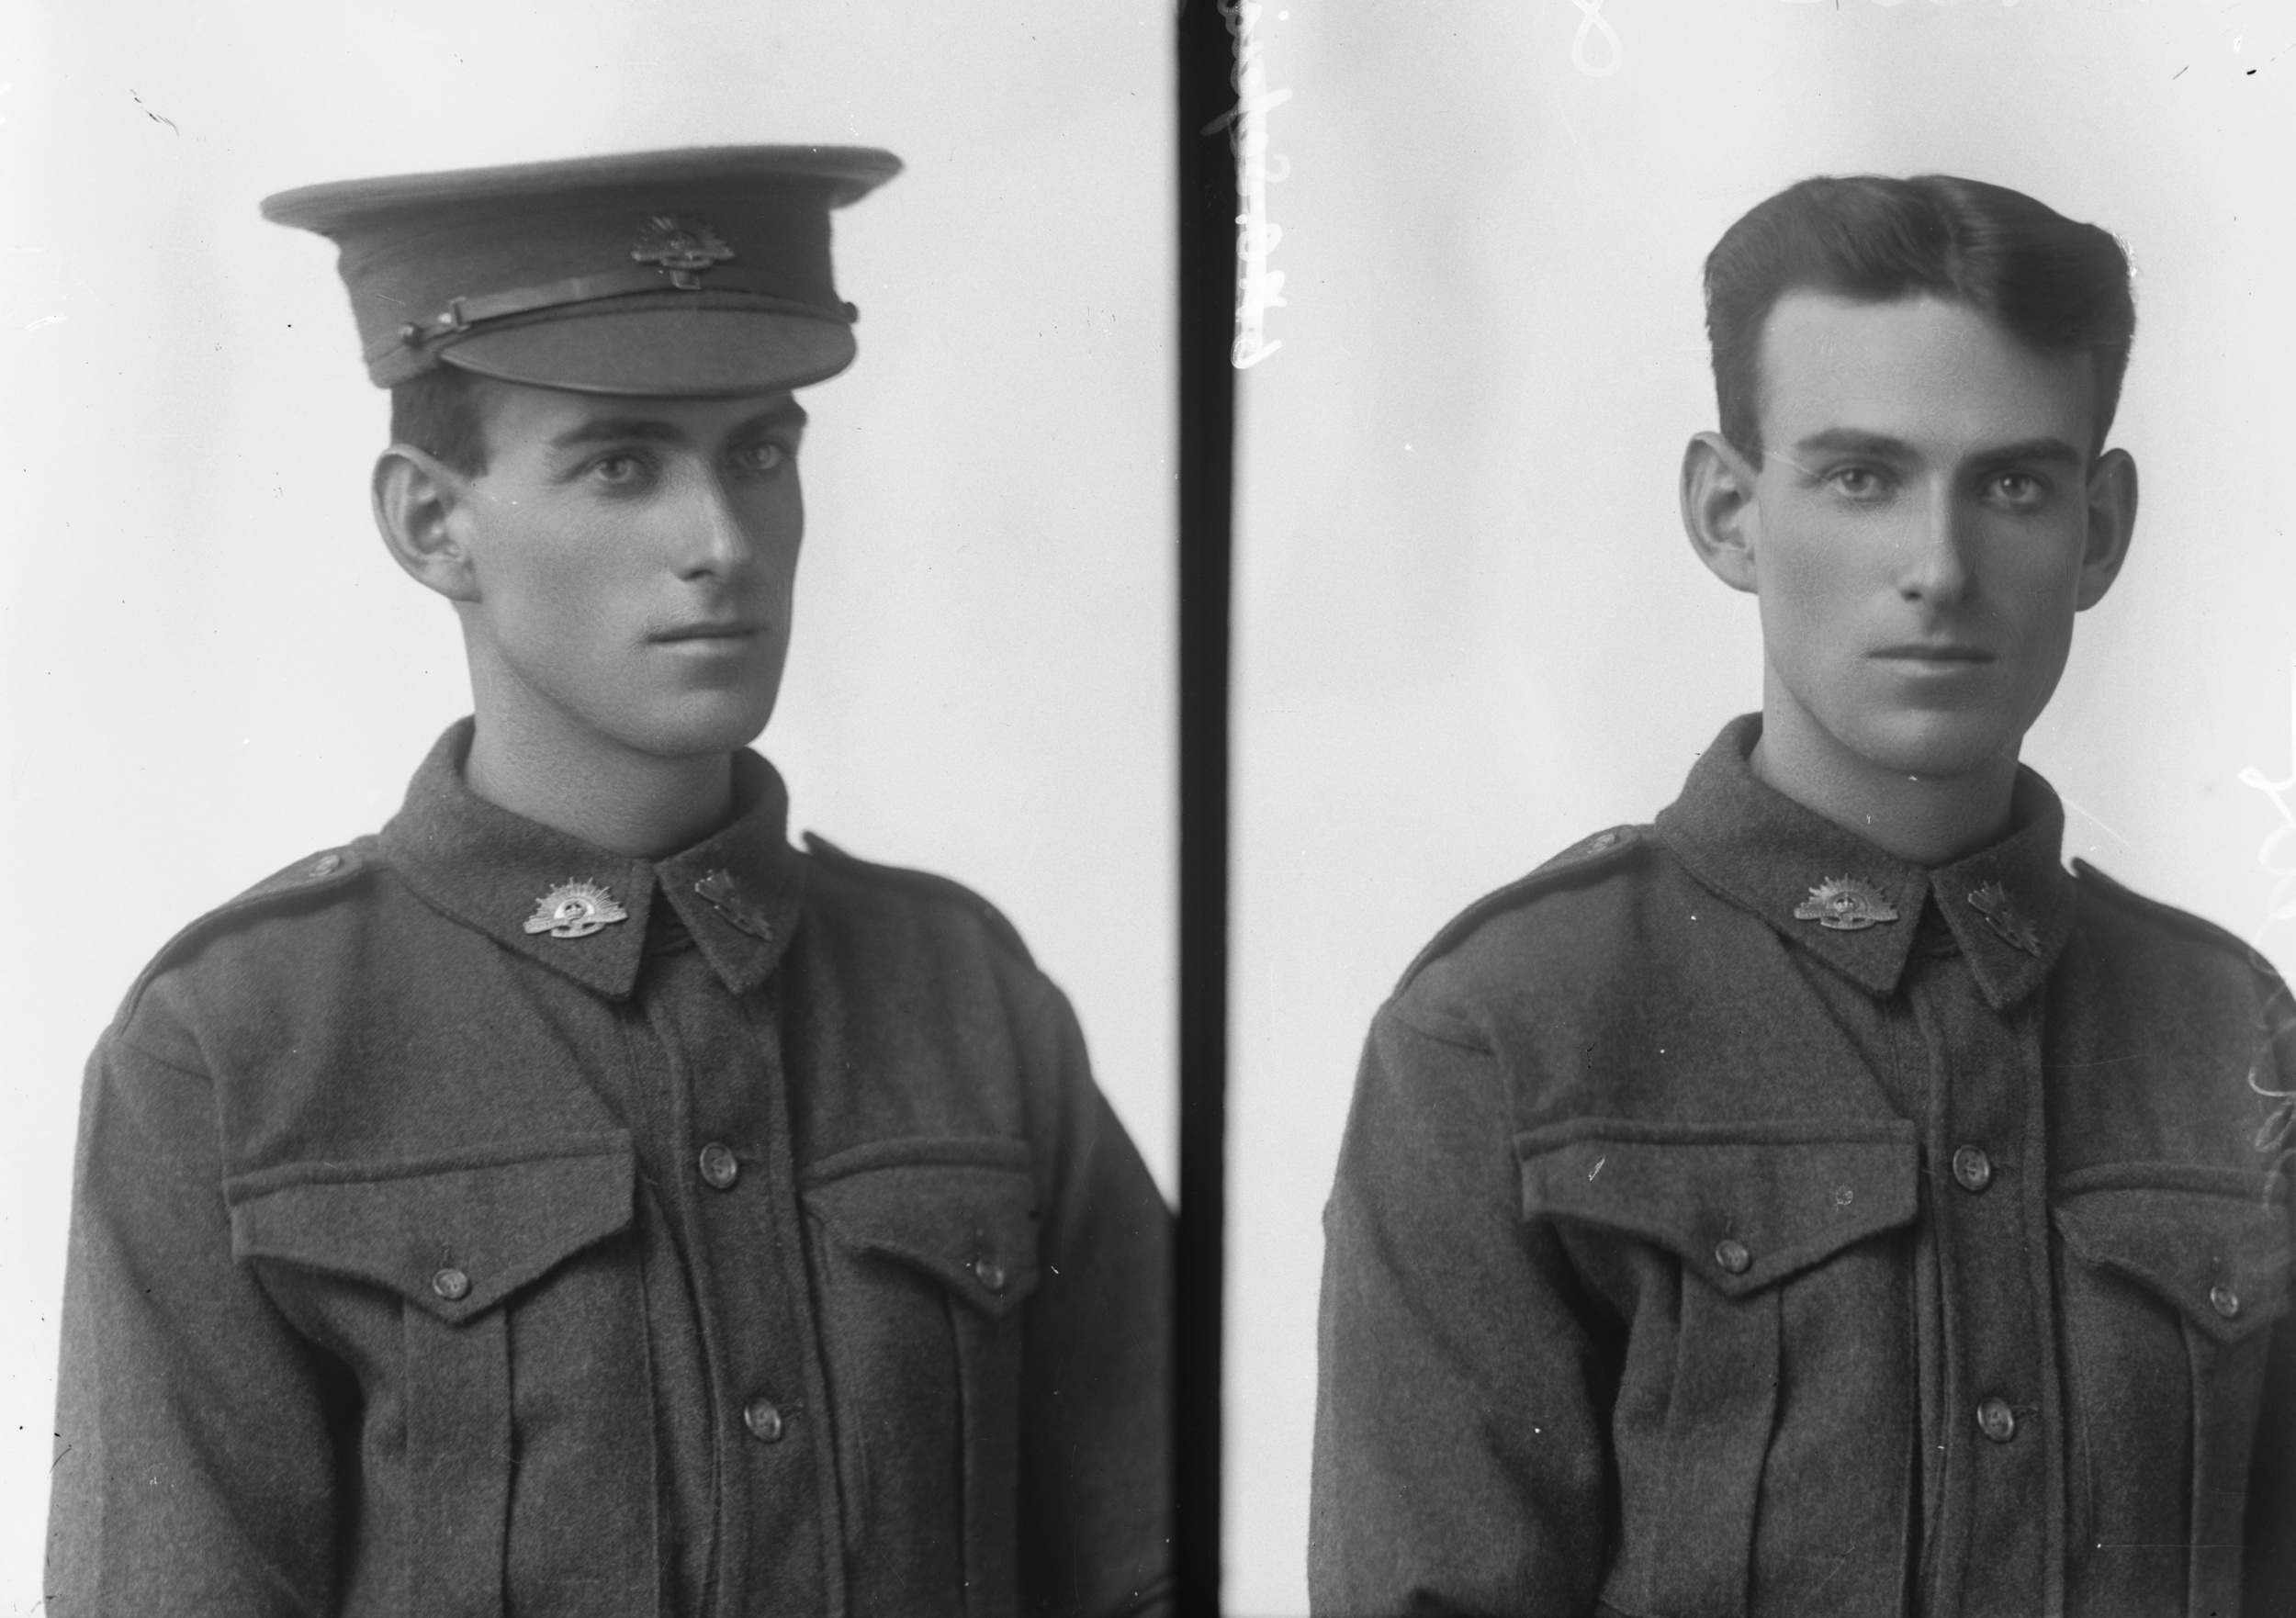 Photographed at the Dease Studio, 117 Barrack Street Perth WA Image courtesy of the State Library of Western Australia: 108683PD